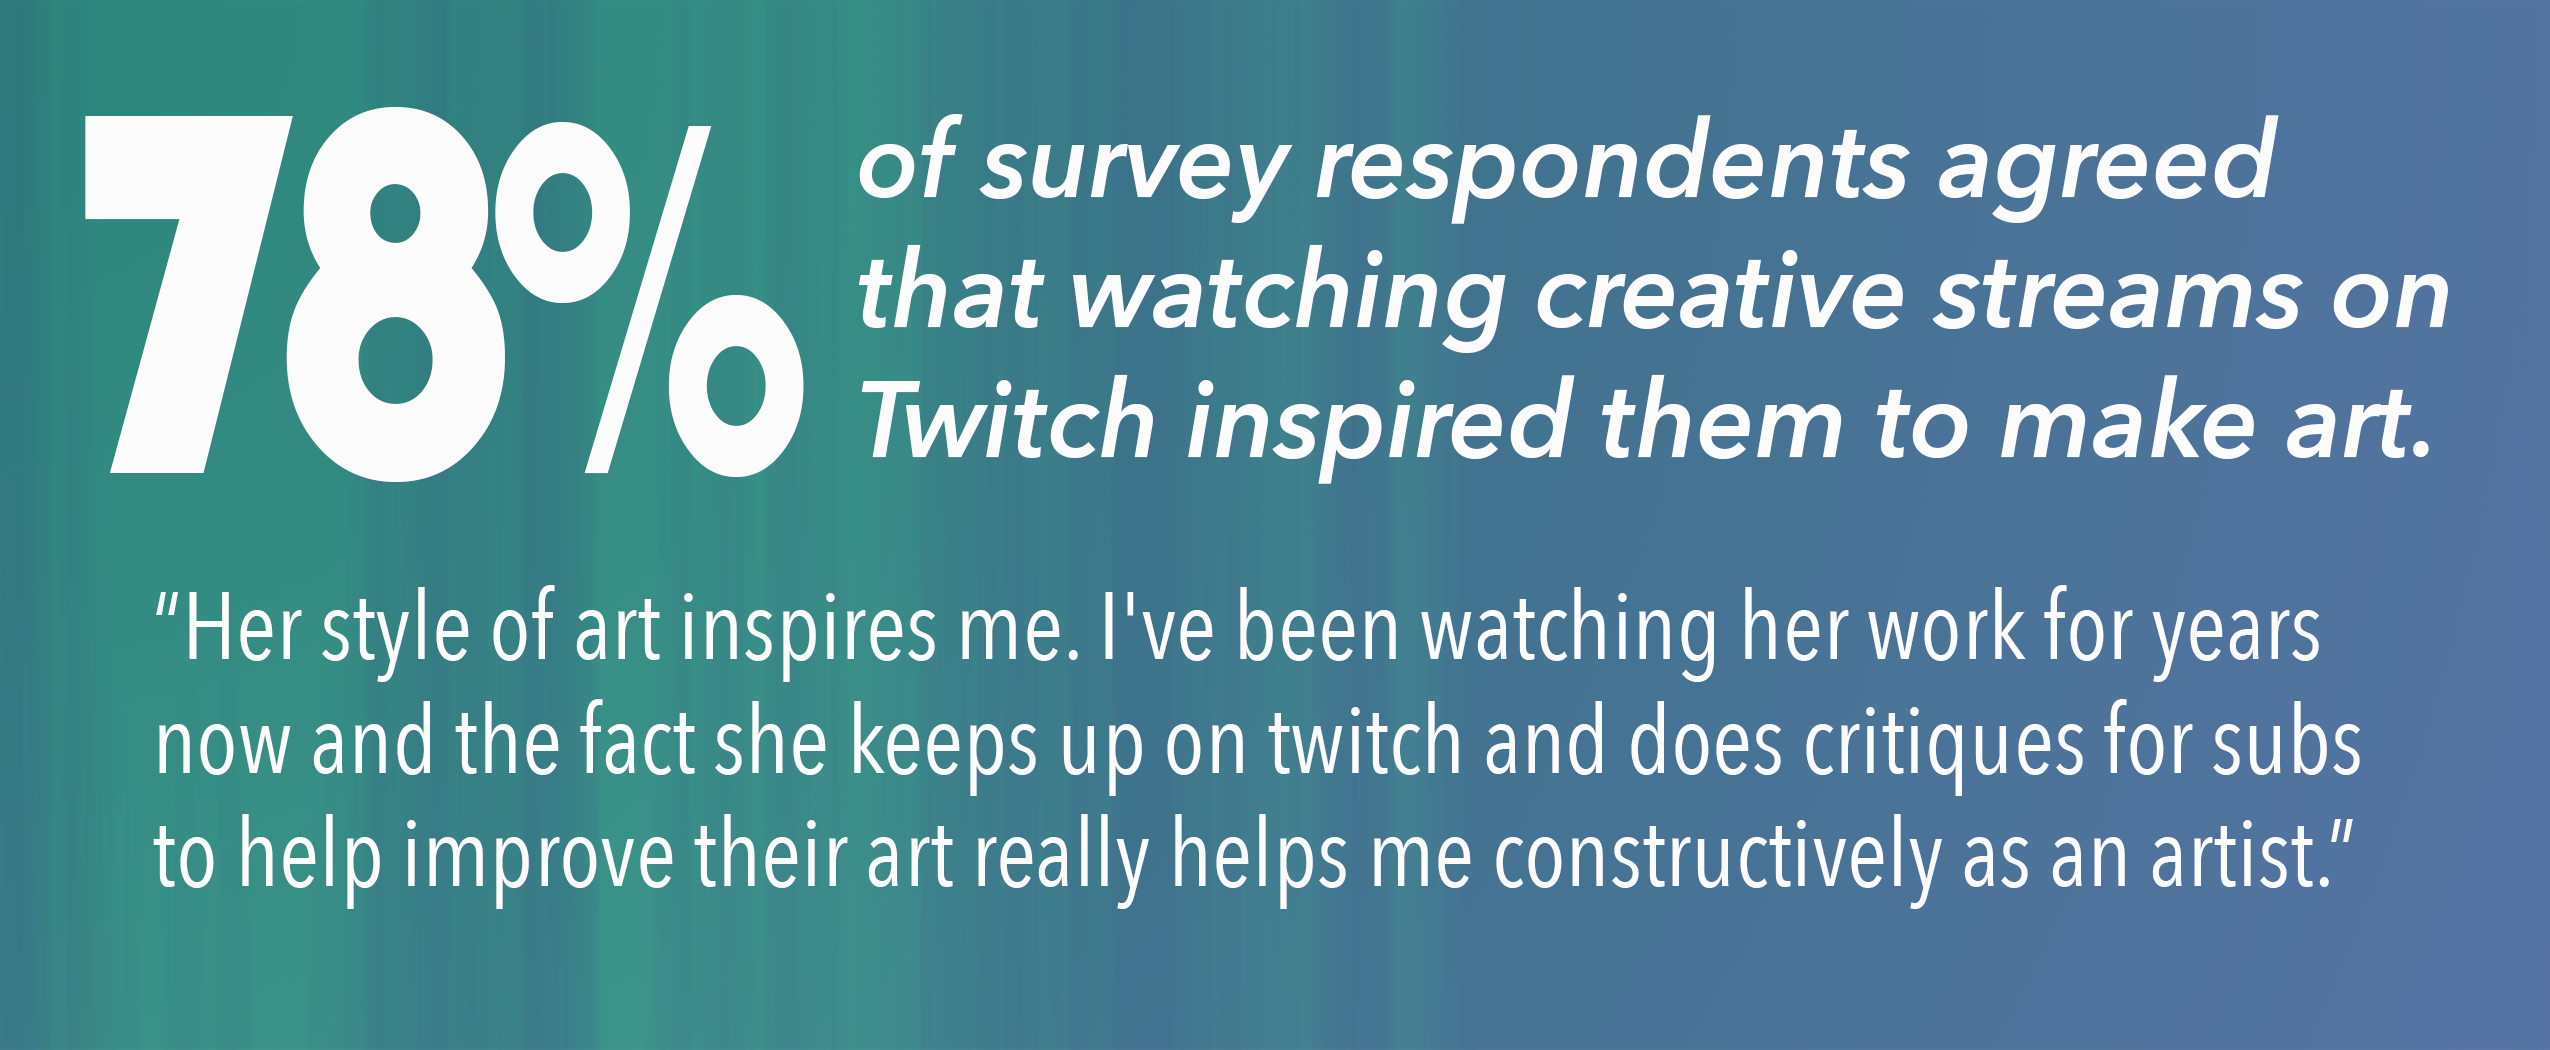 millennials and the ethos of new literacies discover create the emotional impact of engagement on twitch